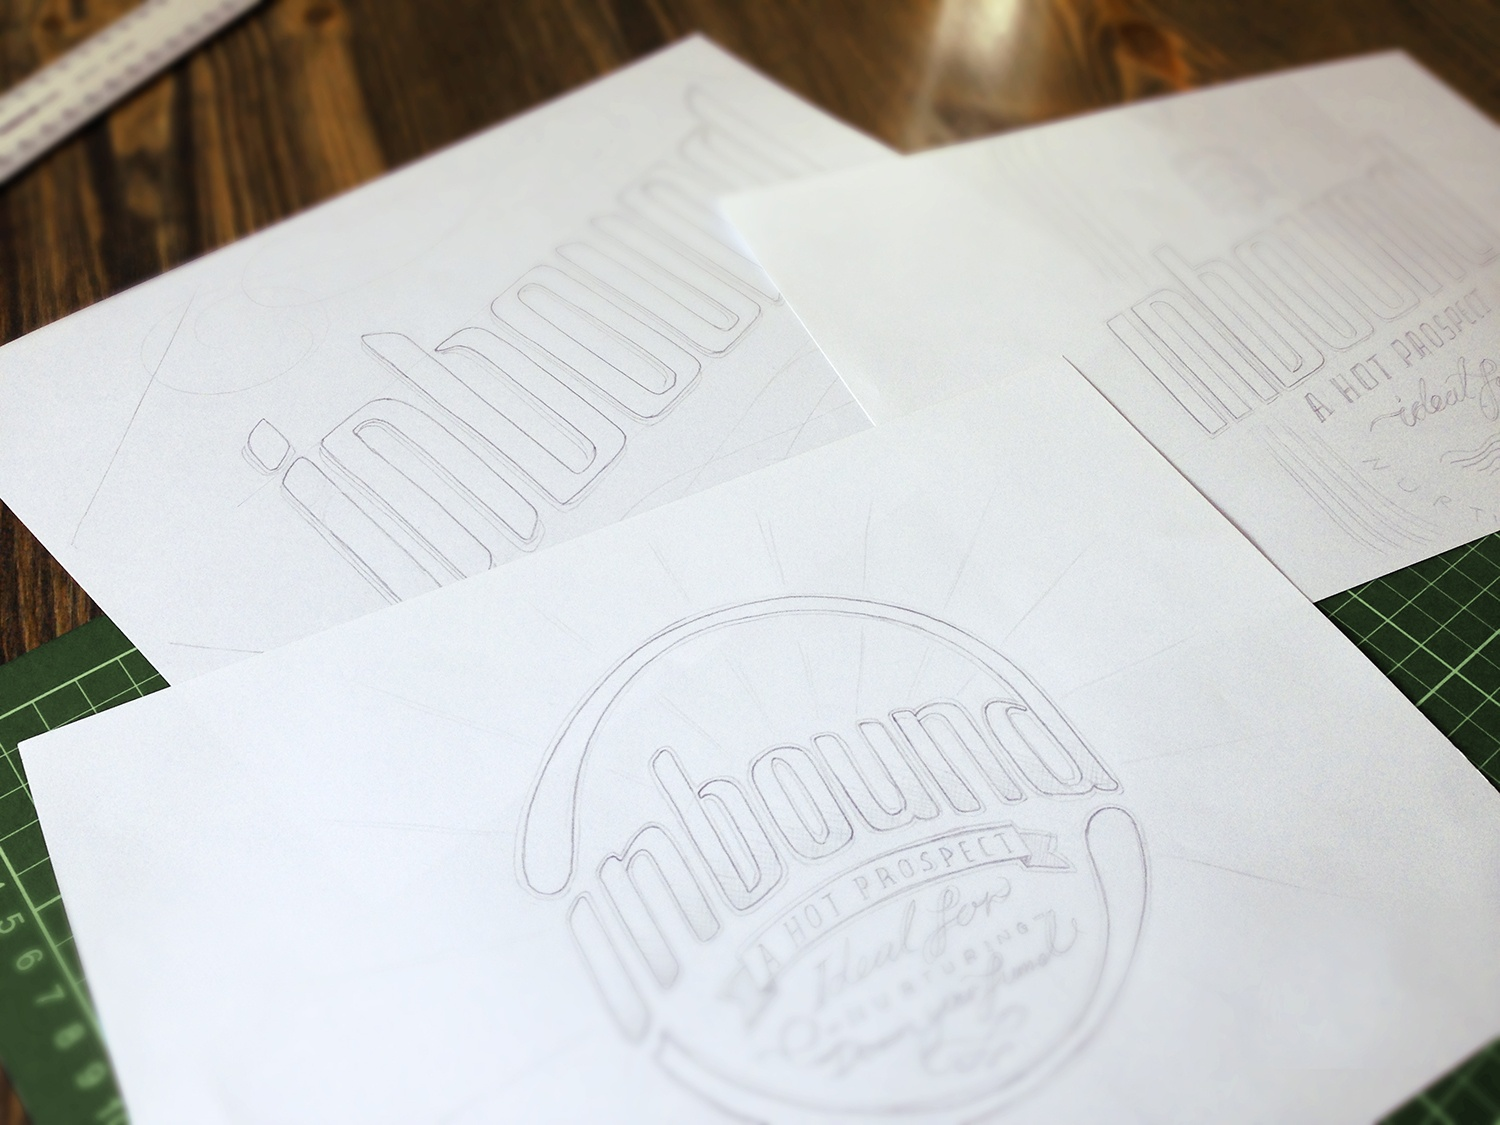 The initial design of a beer bottle label packaging design